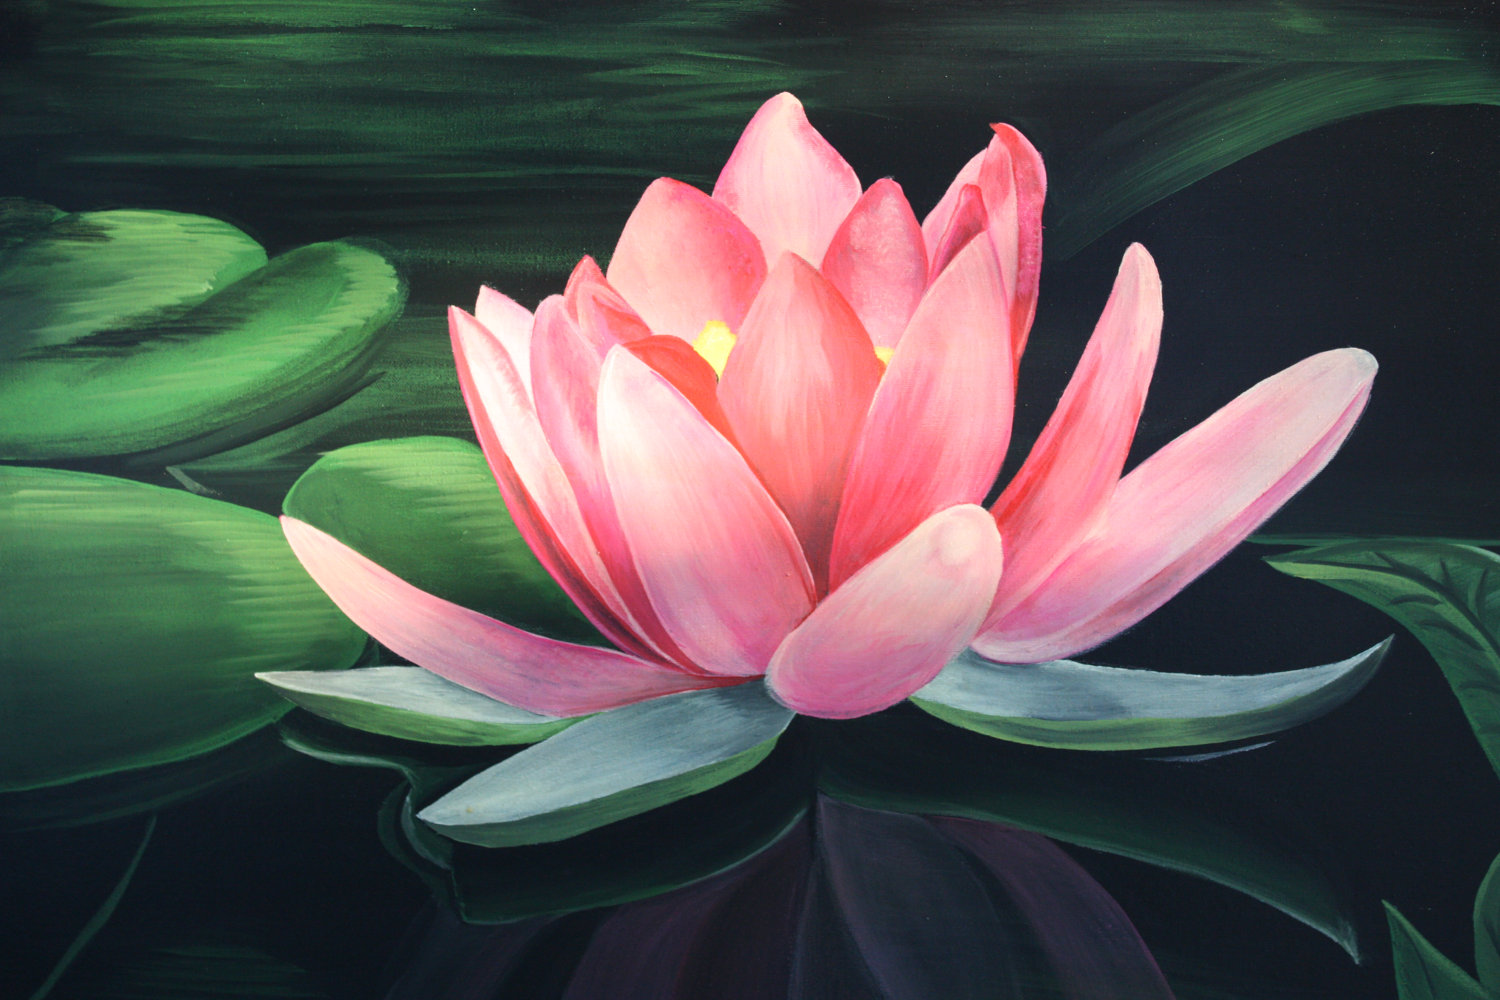 Lotus flower art flower hd wallpapers images pictures tattoos lotus flower art flower hd wallpapers images pictures tattoos and desktop background mightylinksfo Image collections